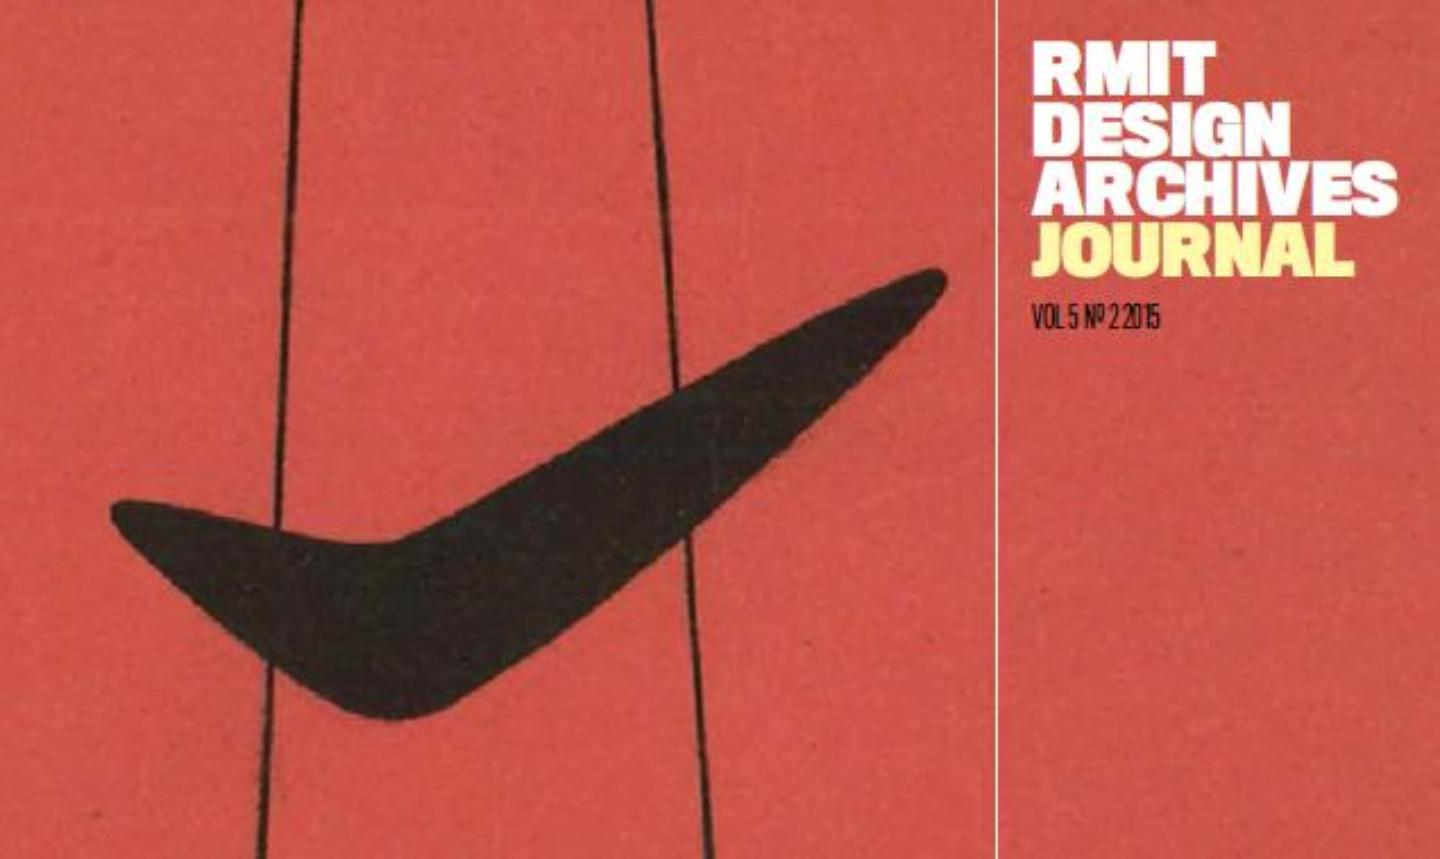 cover of RMIT Design Archives journal